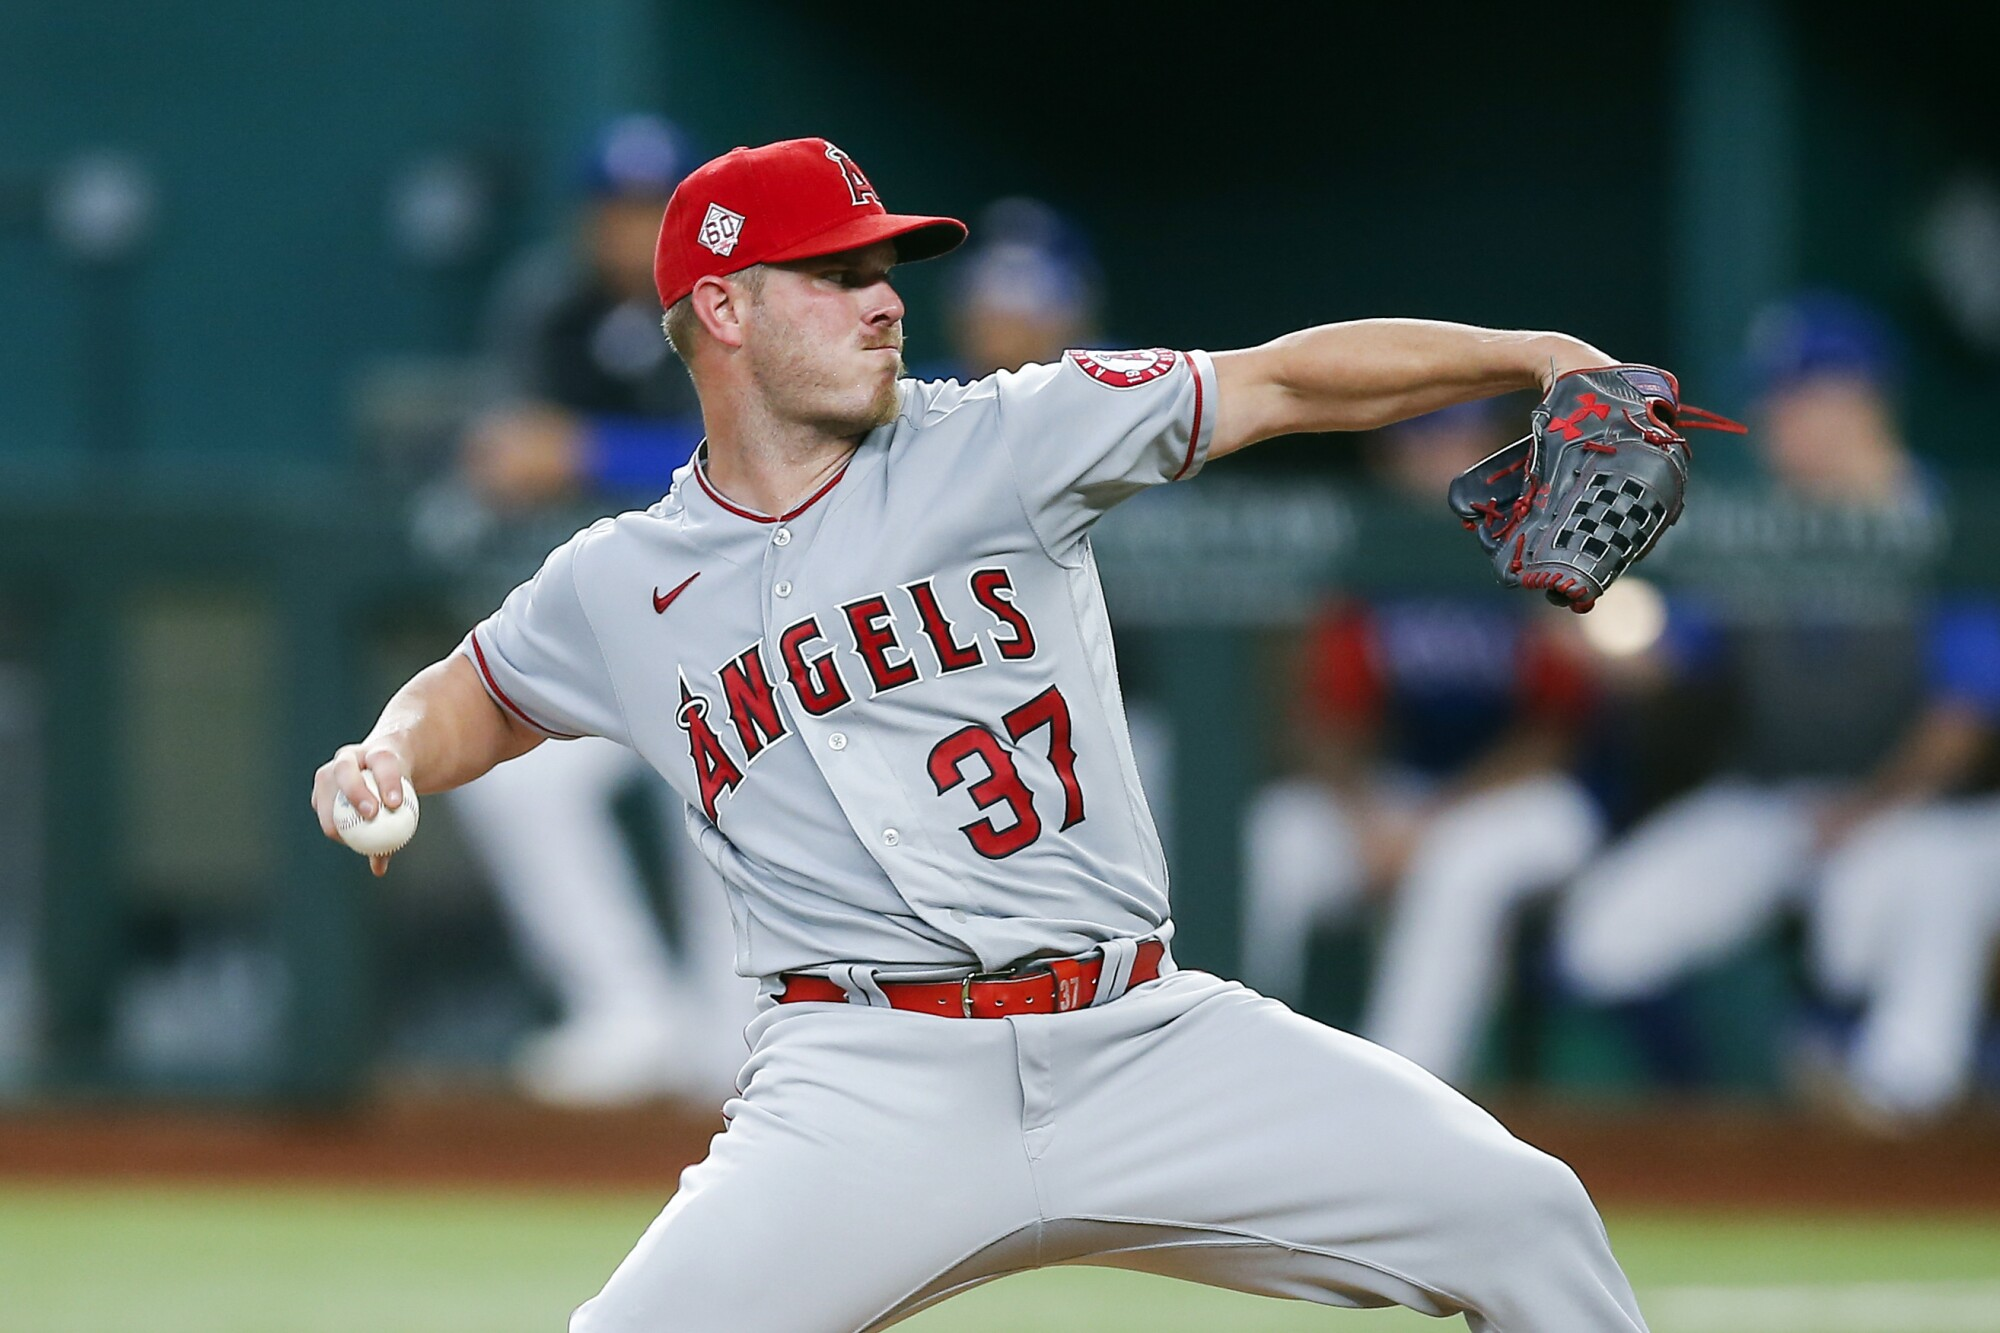 Angels right-hander Dylan Bundy throws a pitch in the first inning Thursday.